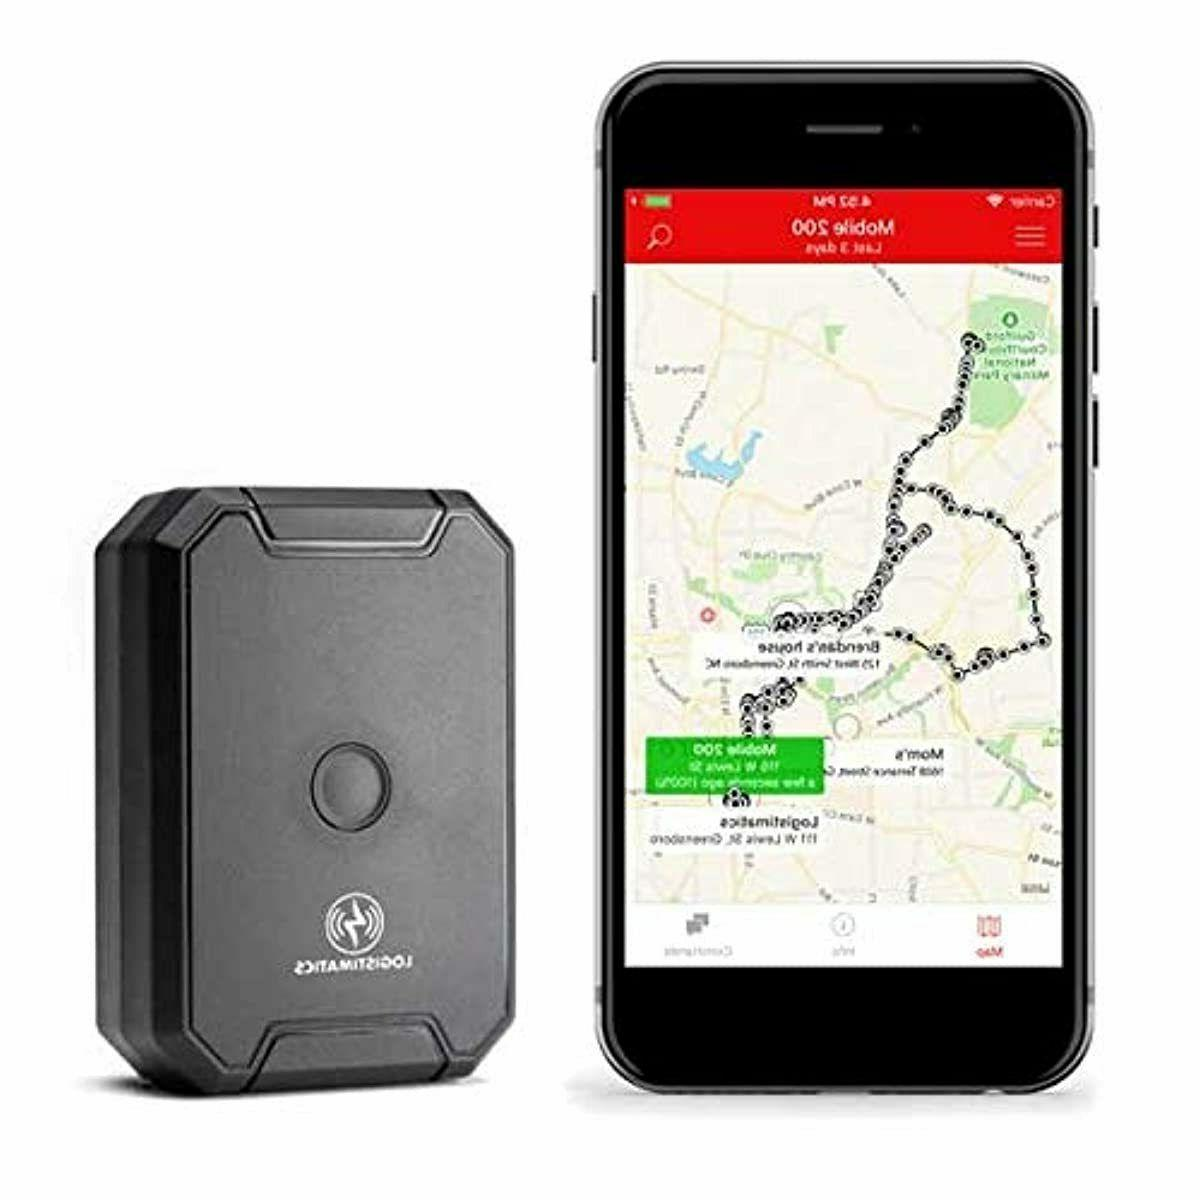 logistimatics mobile 200 gps tracker with live